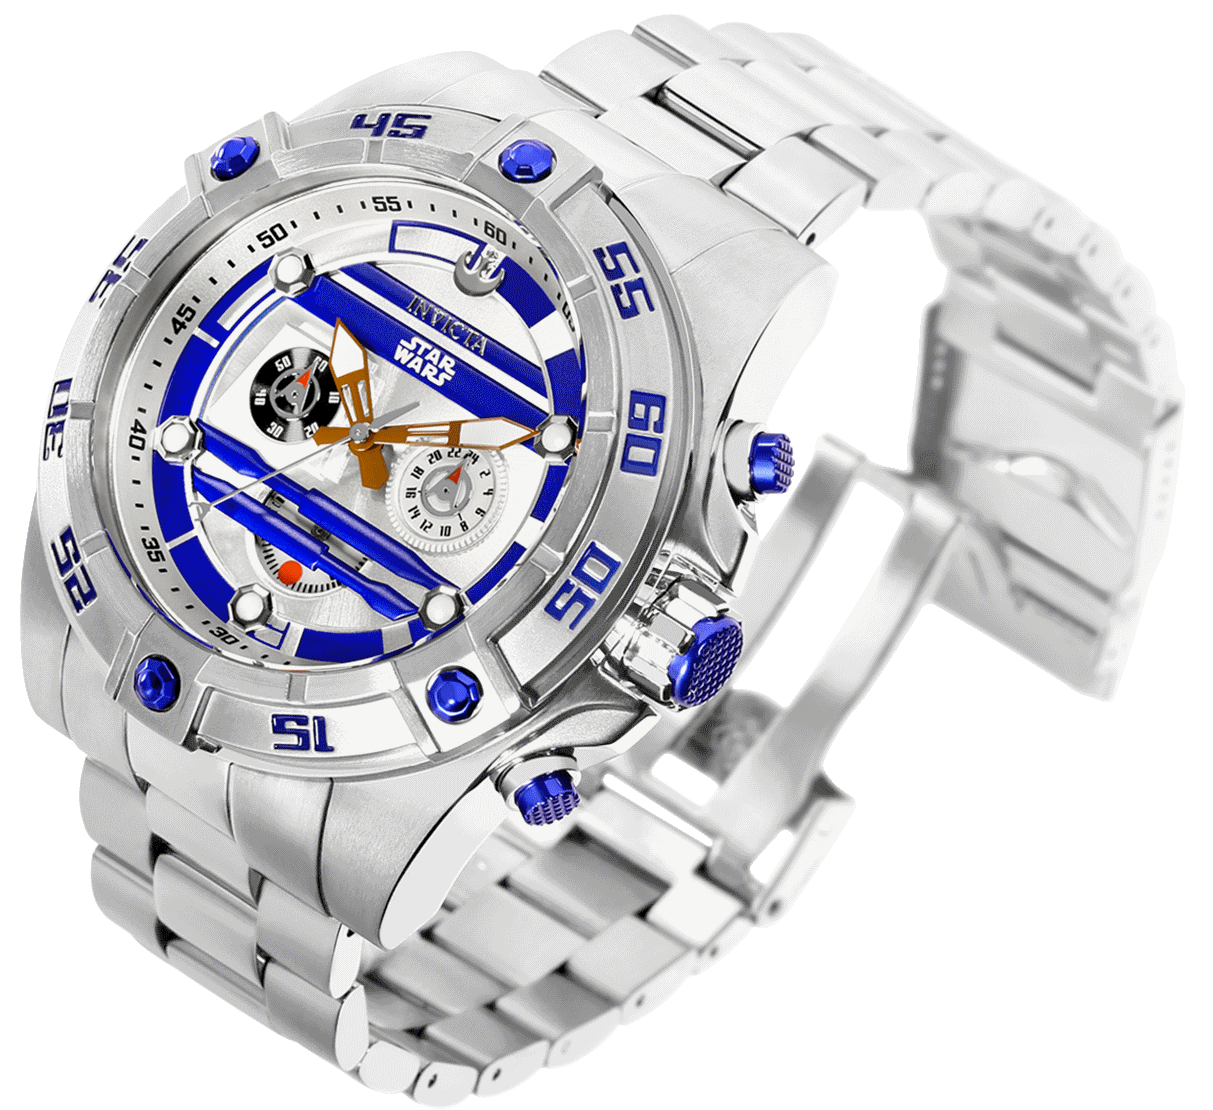 Invicta Star Wars - R2D2 Edition